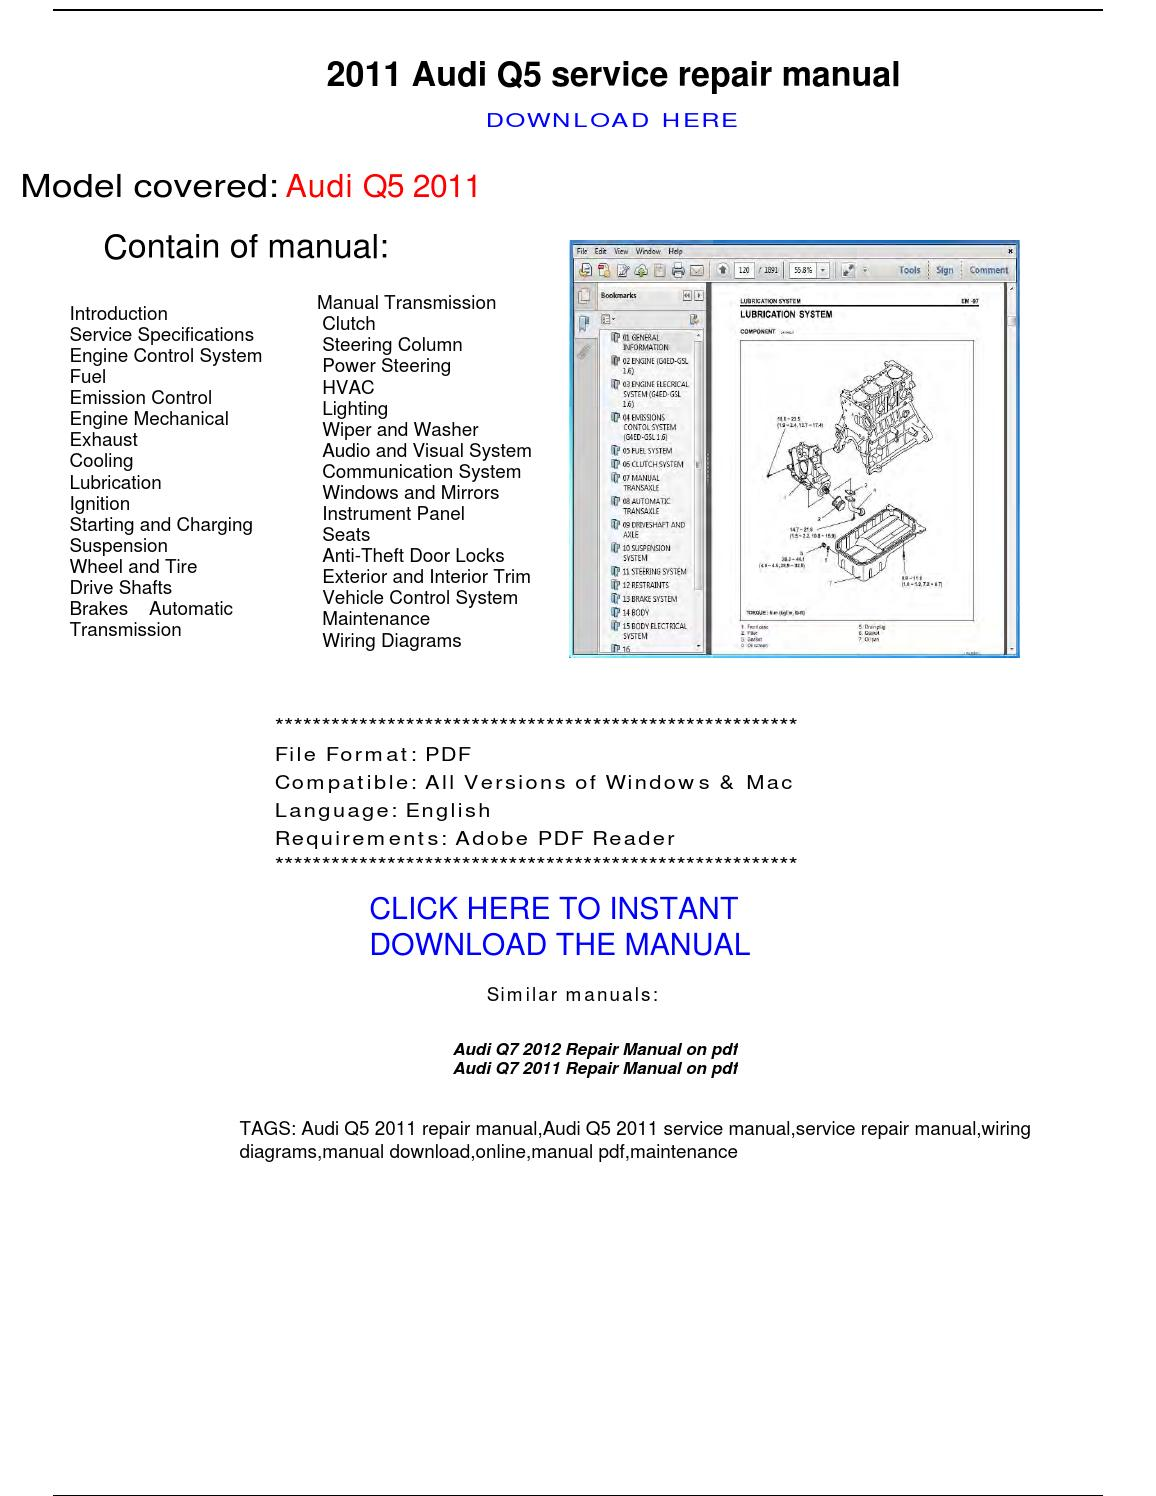 Audi Q5 2011 Repair Manual By Repairmanualpdf